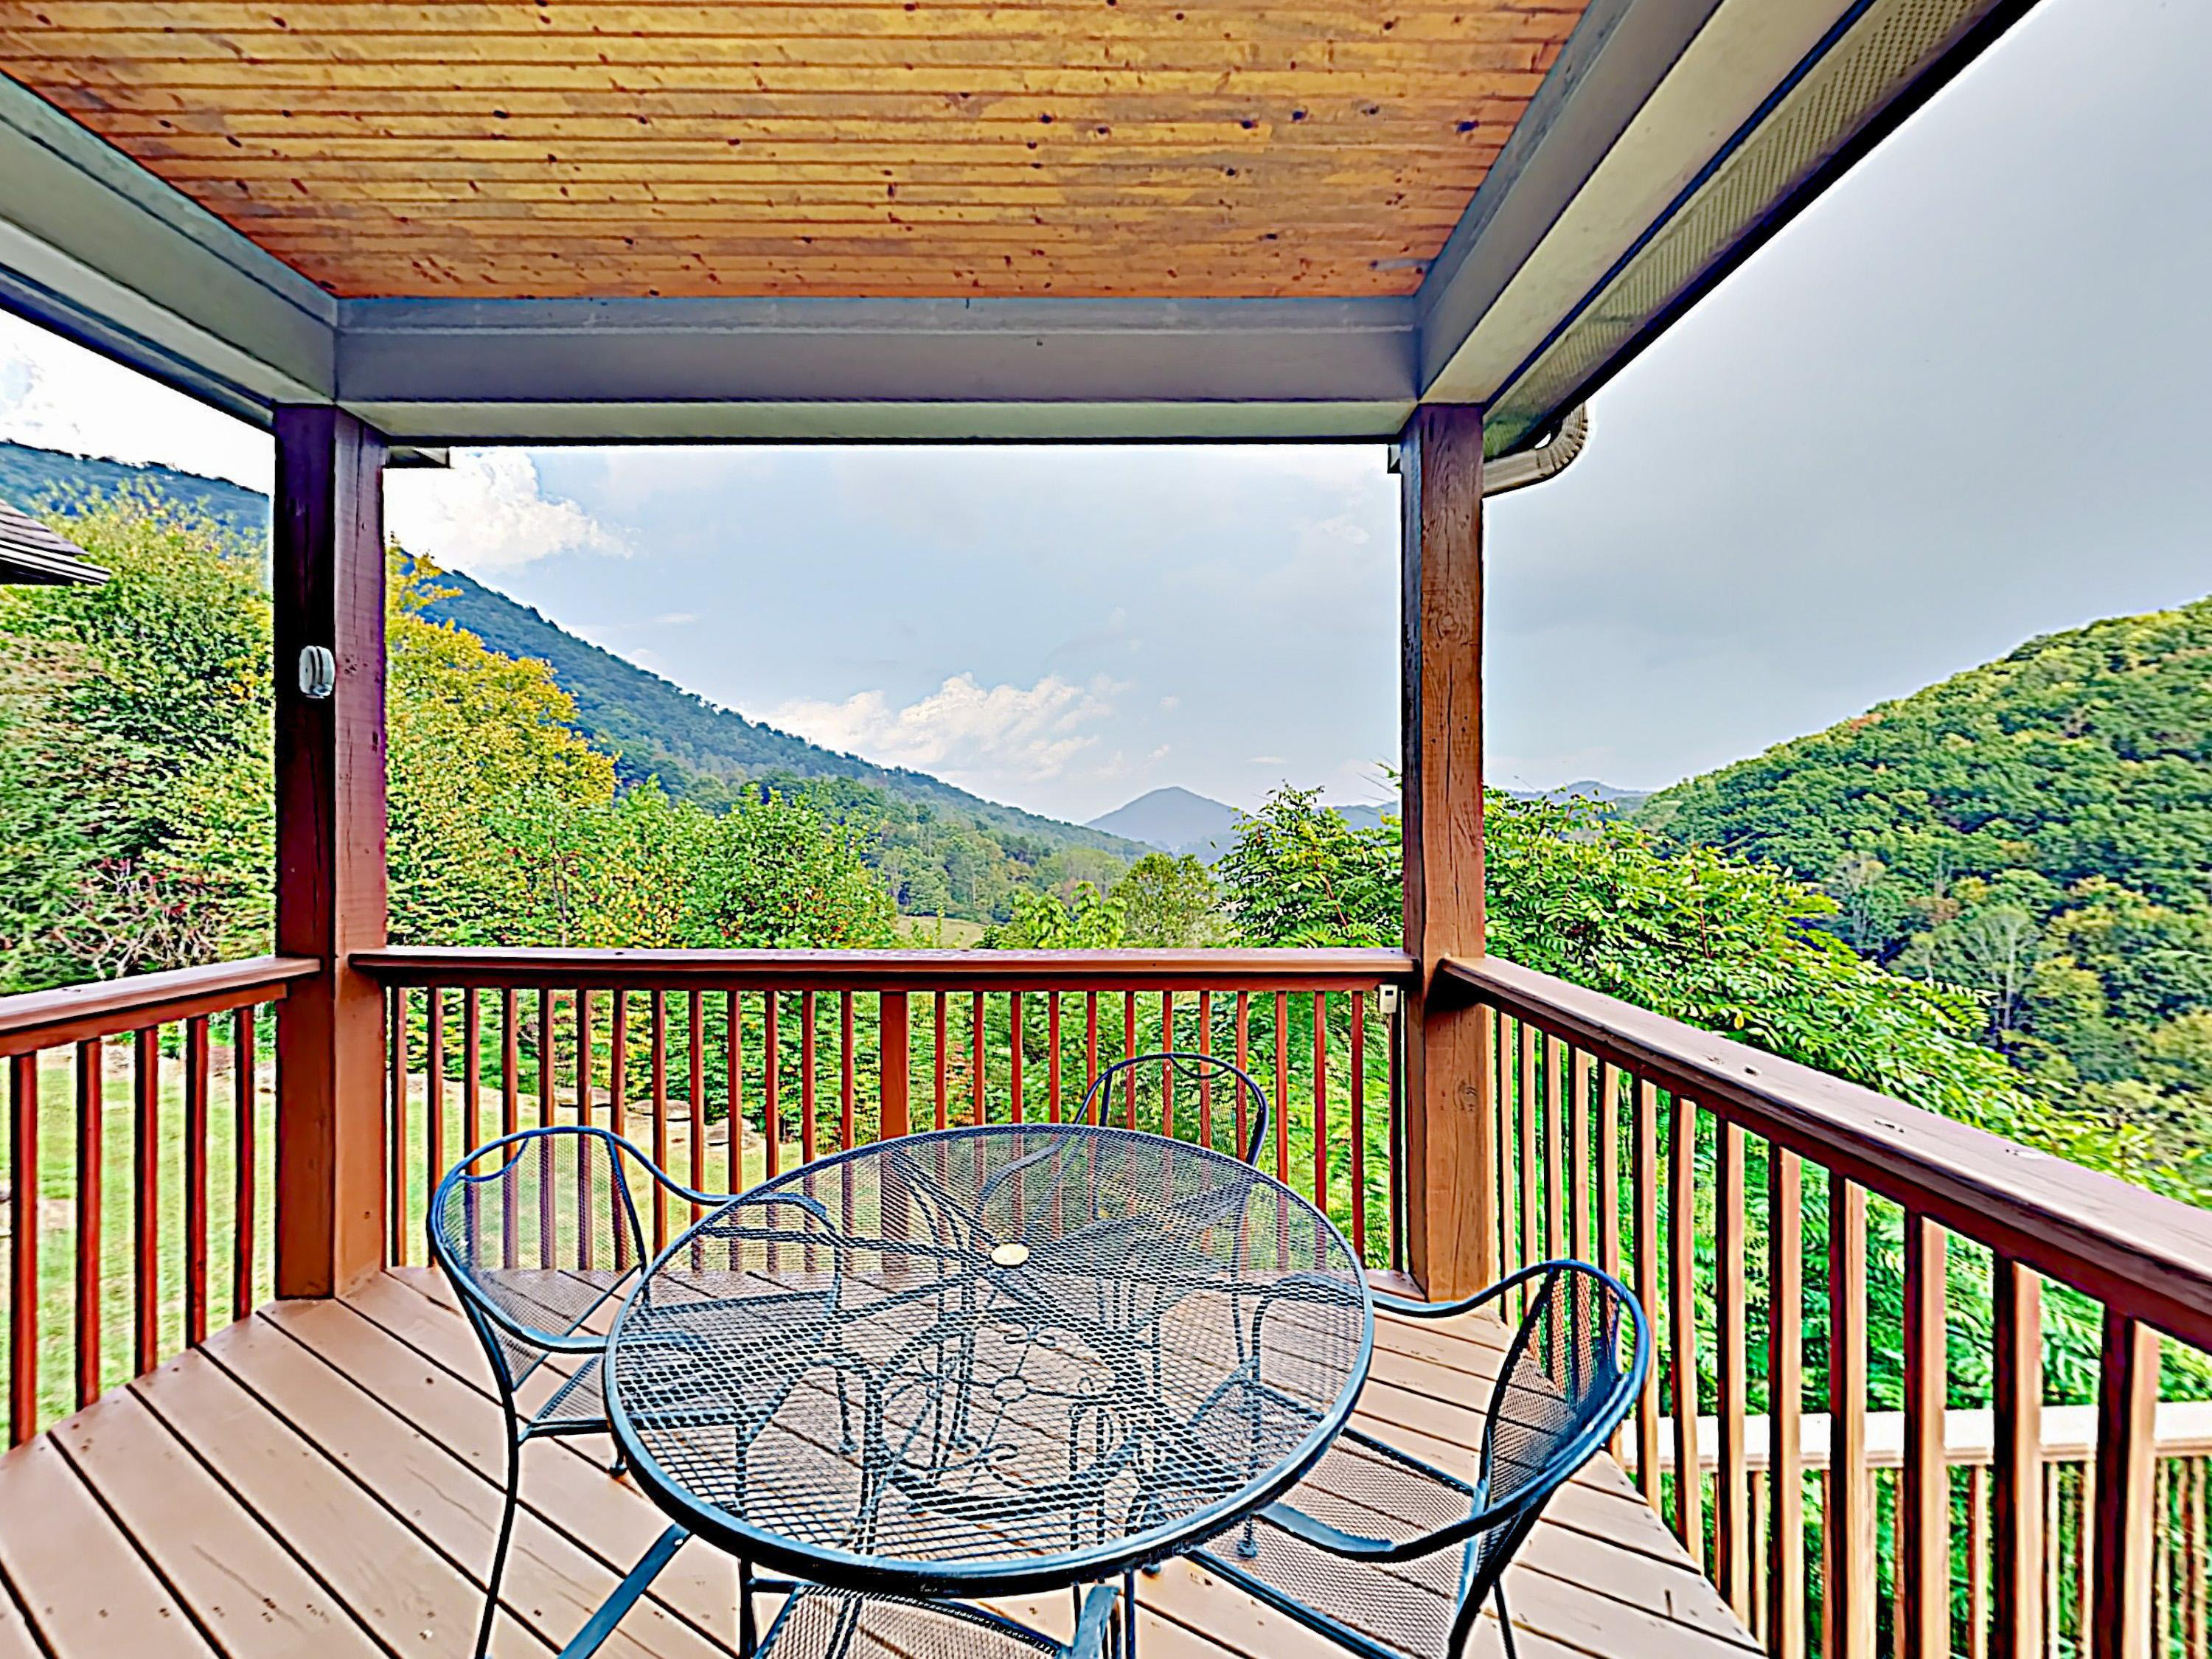 Share alfresco meals in front of breathtaking scenery on the upper deck.